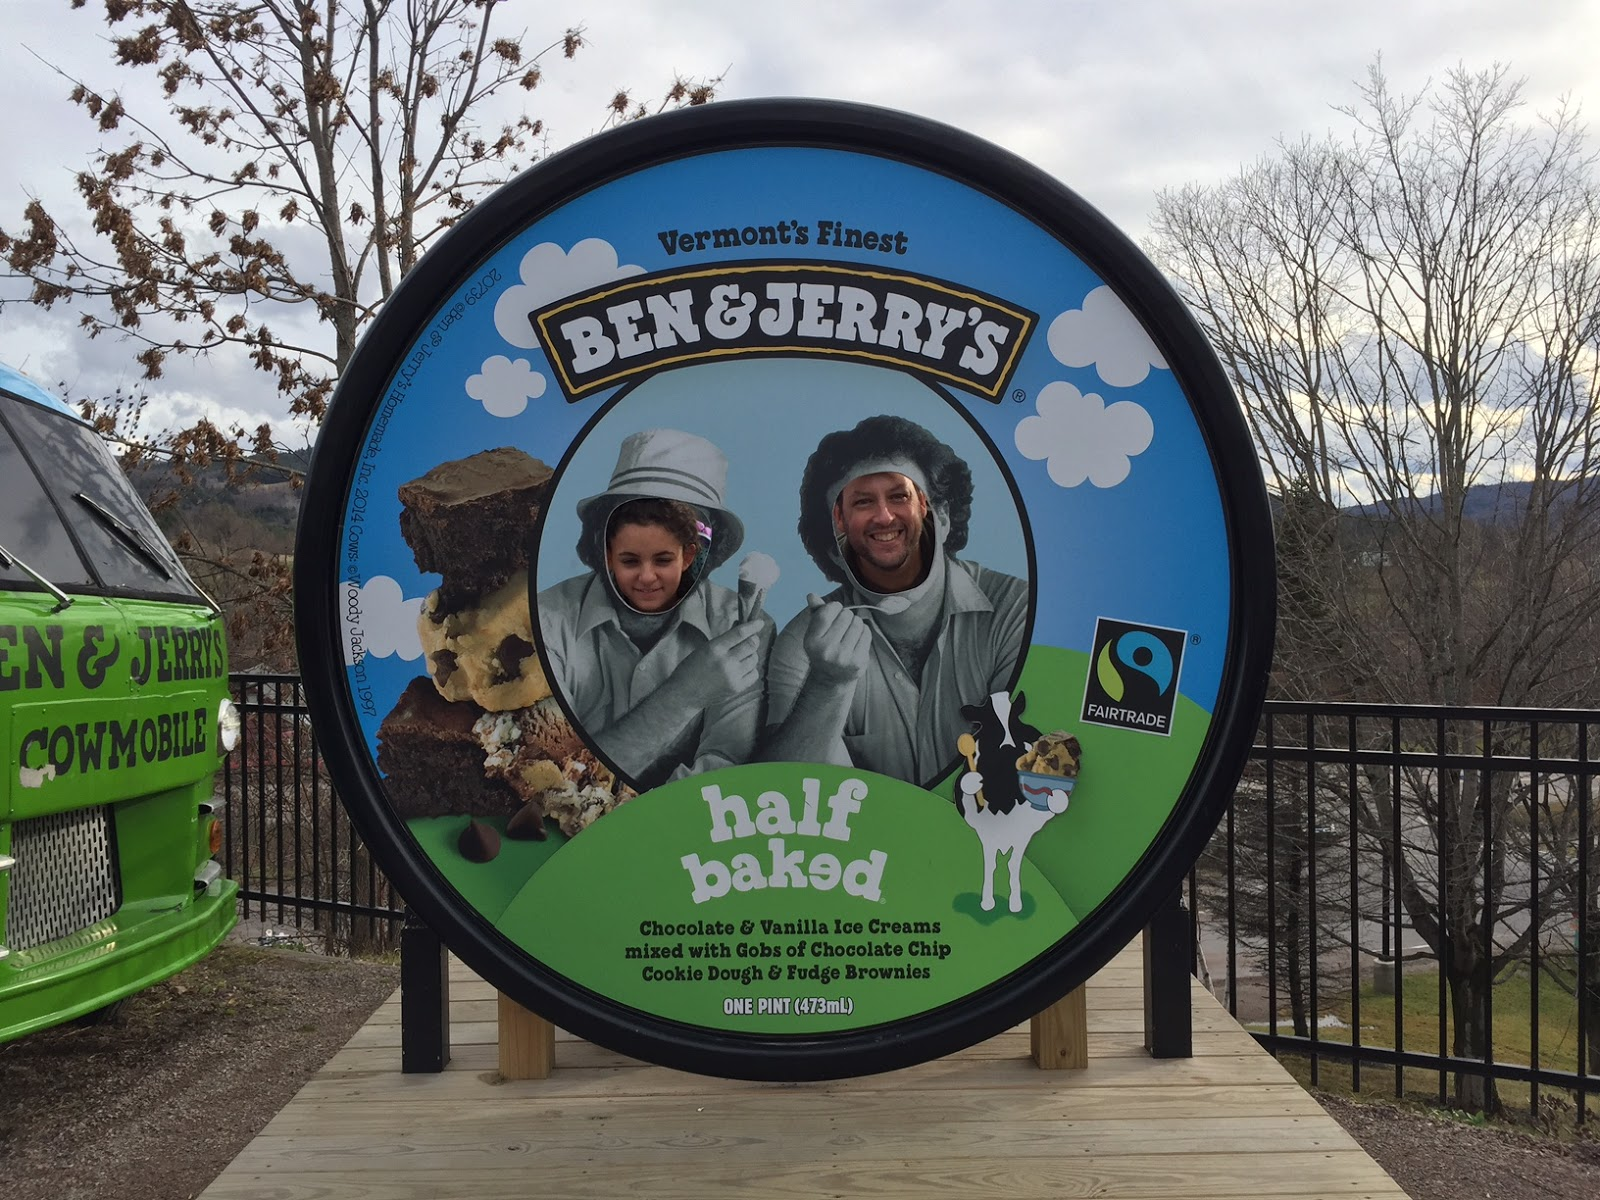 Kosher Factory Tours : 65 Degrees in December: A Trip to Ben